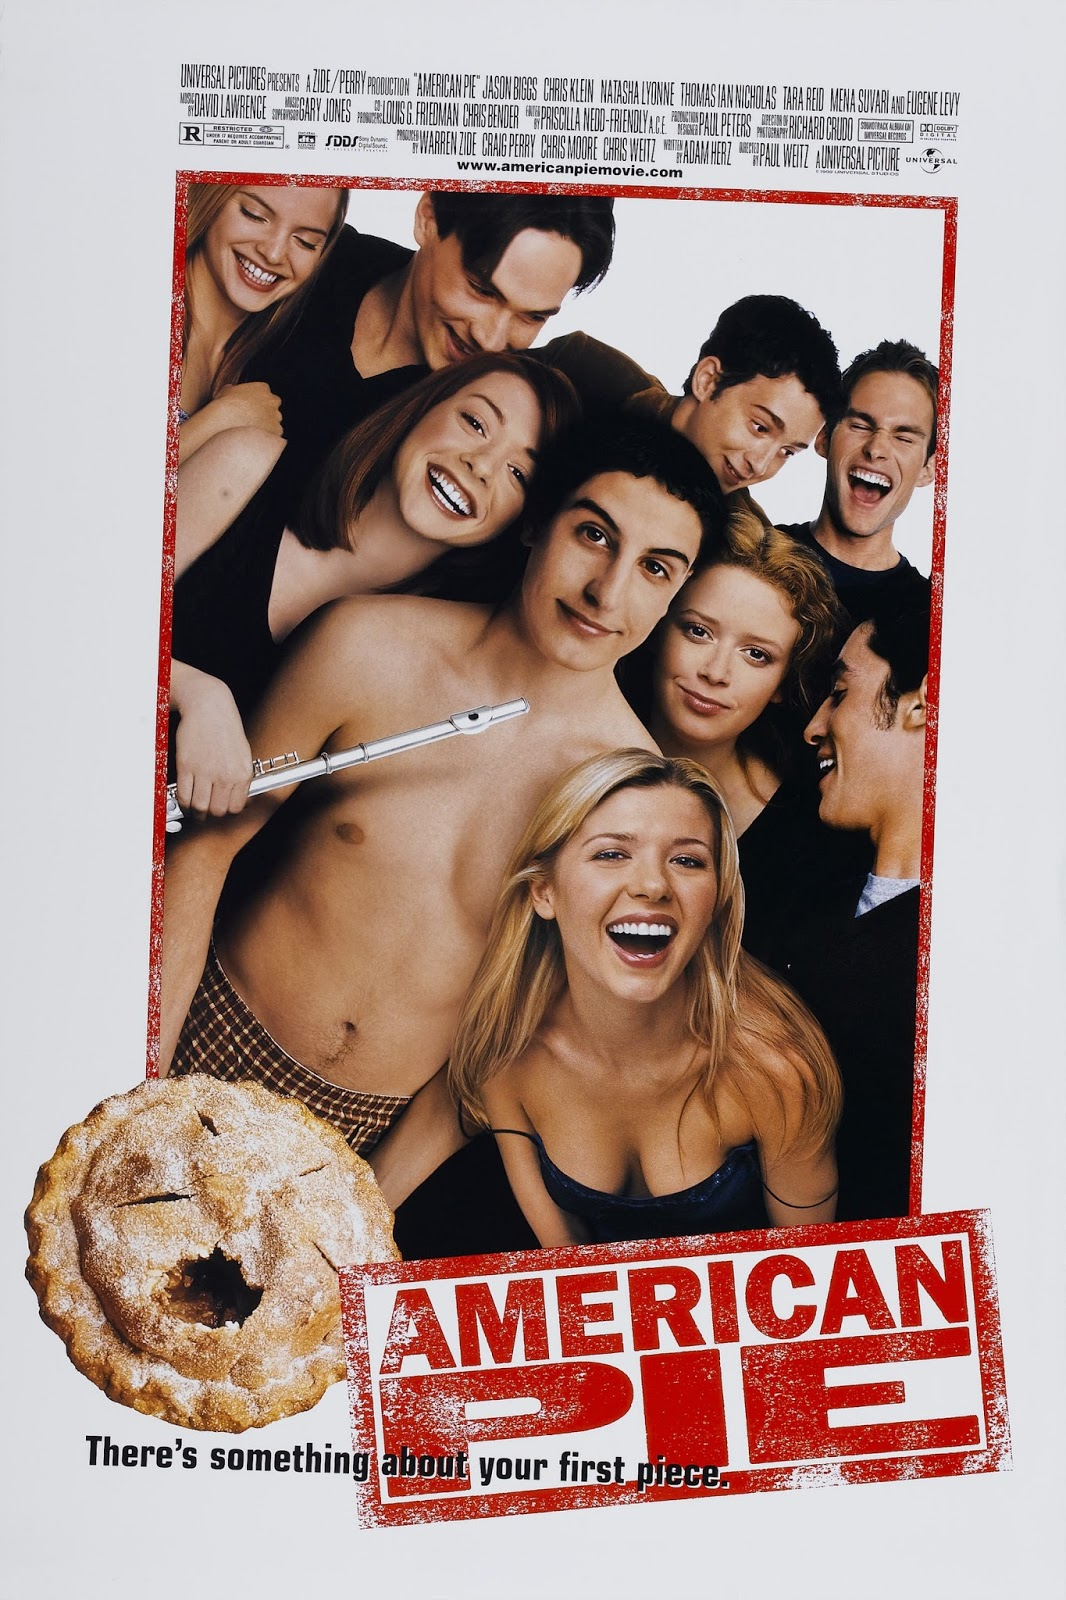 American Pie Nadia Scene Unrated american pie unrated blu-ray review ~ ranting ray's film reviews